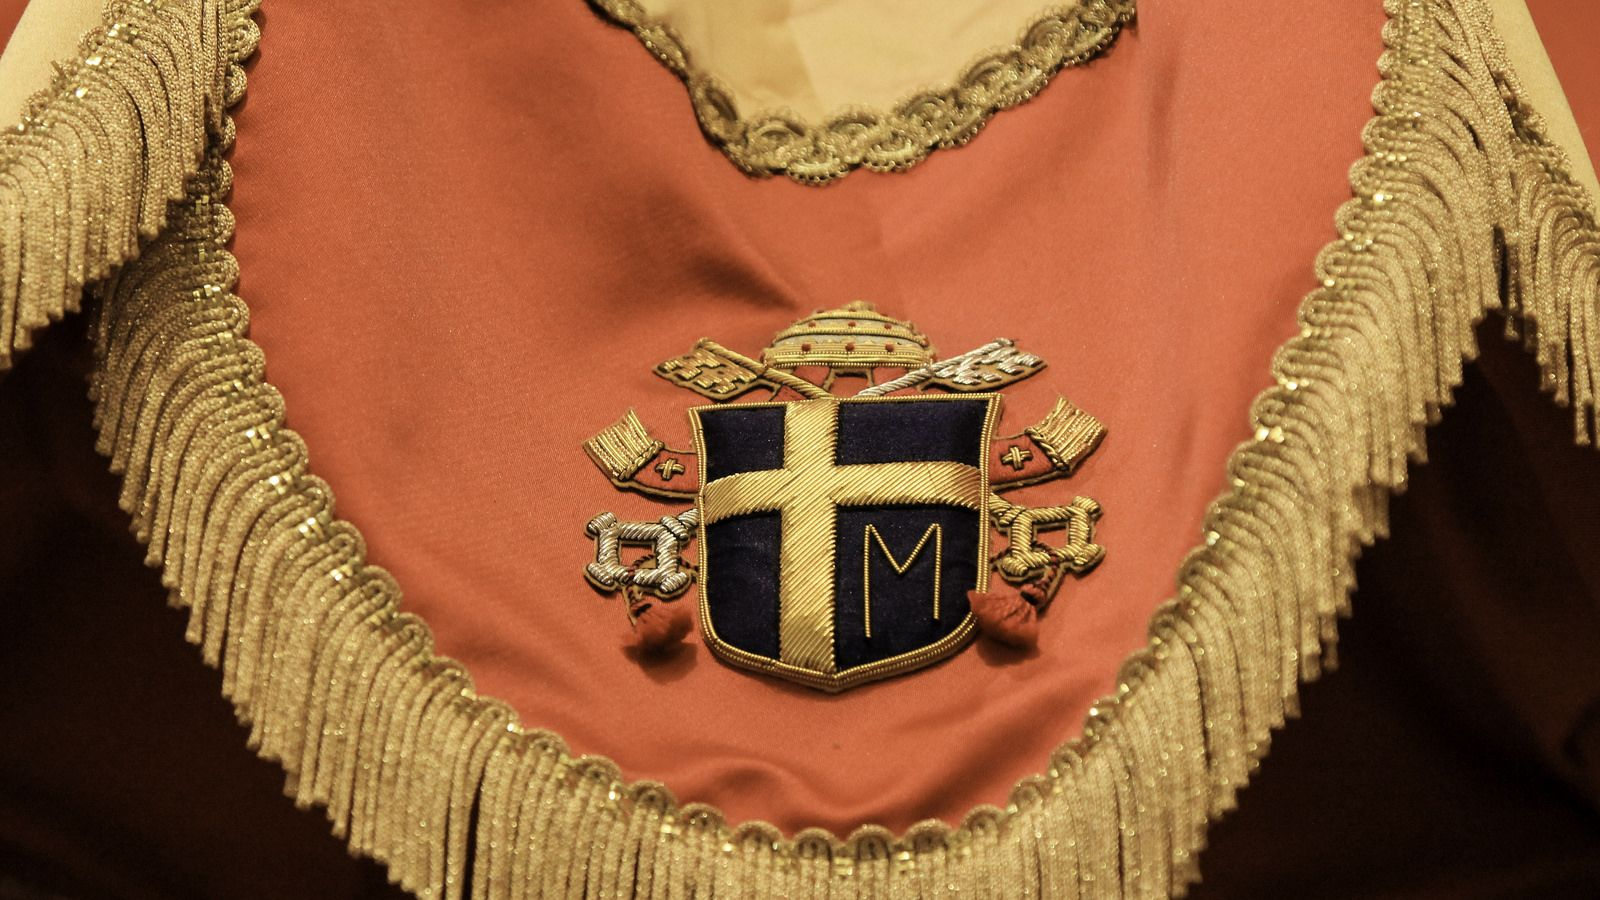 Arms of pope st john paul ii immaculate conception conception and arms of pope st john paul ii the heraldic arms of pope st john paul ii embroidered on the papal ombrellino a symbol of a minor basilica buycottarizona Choice Image